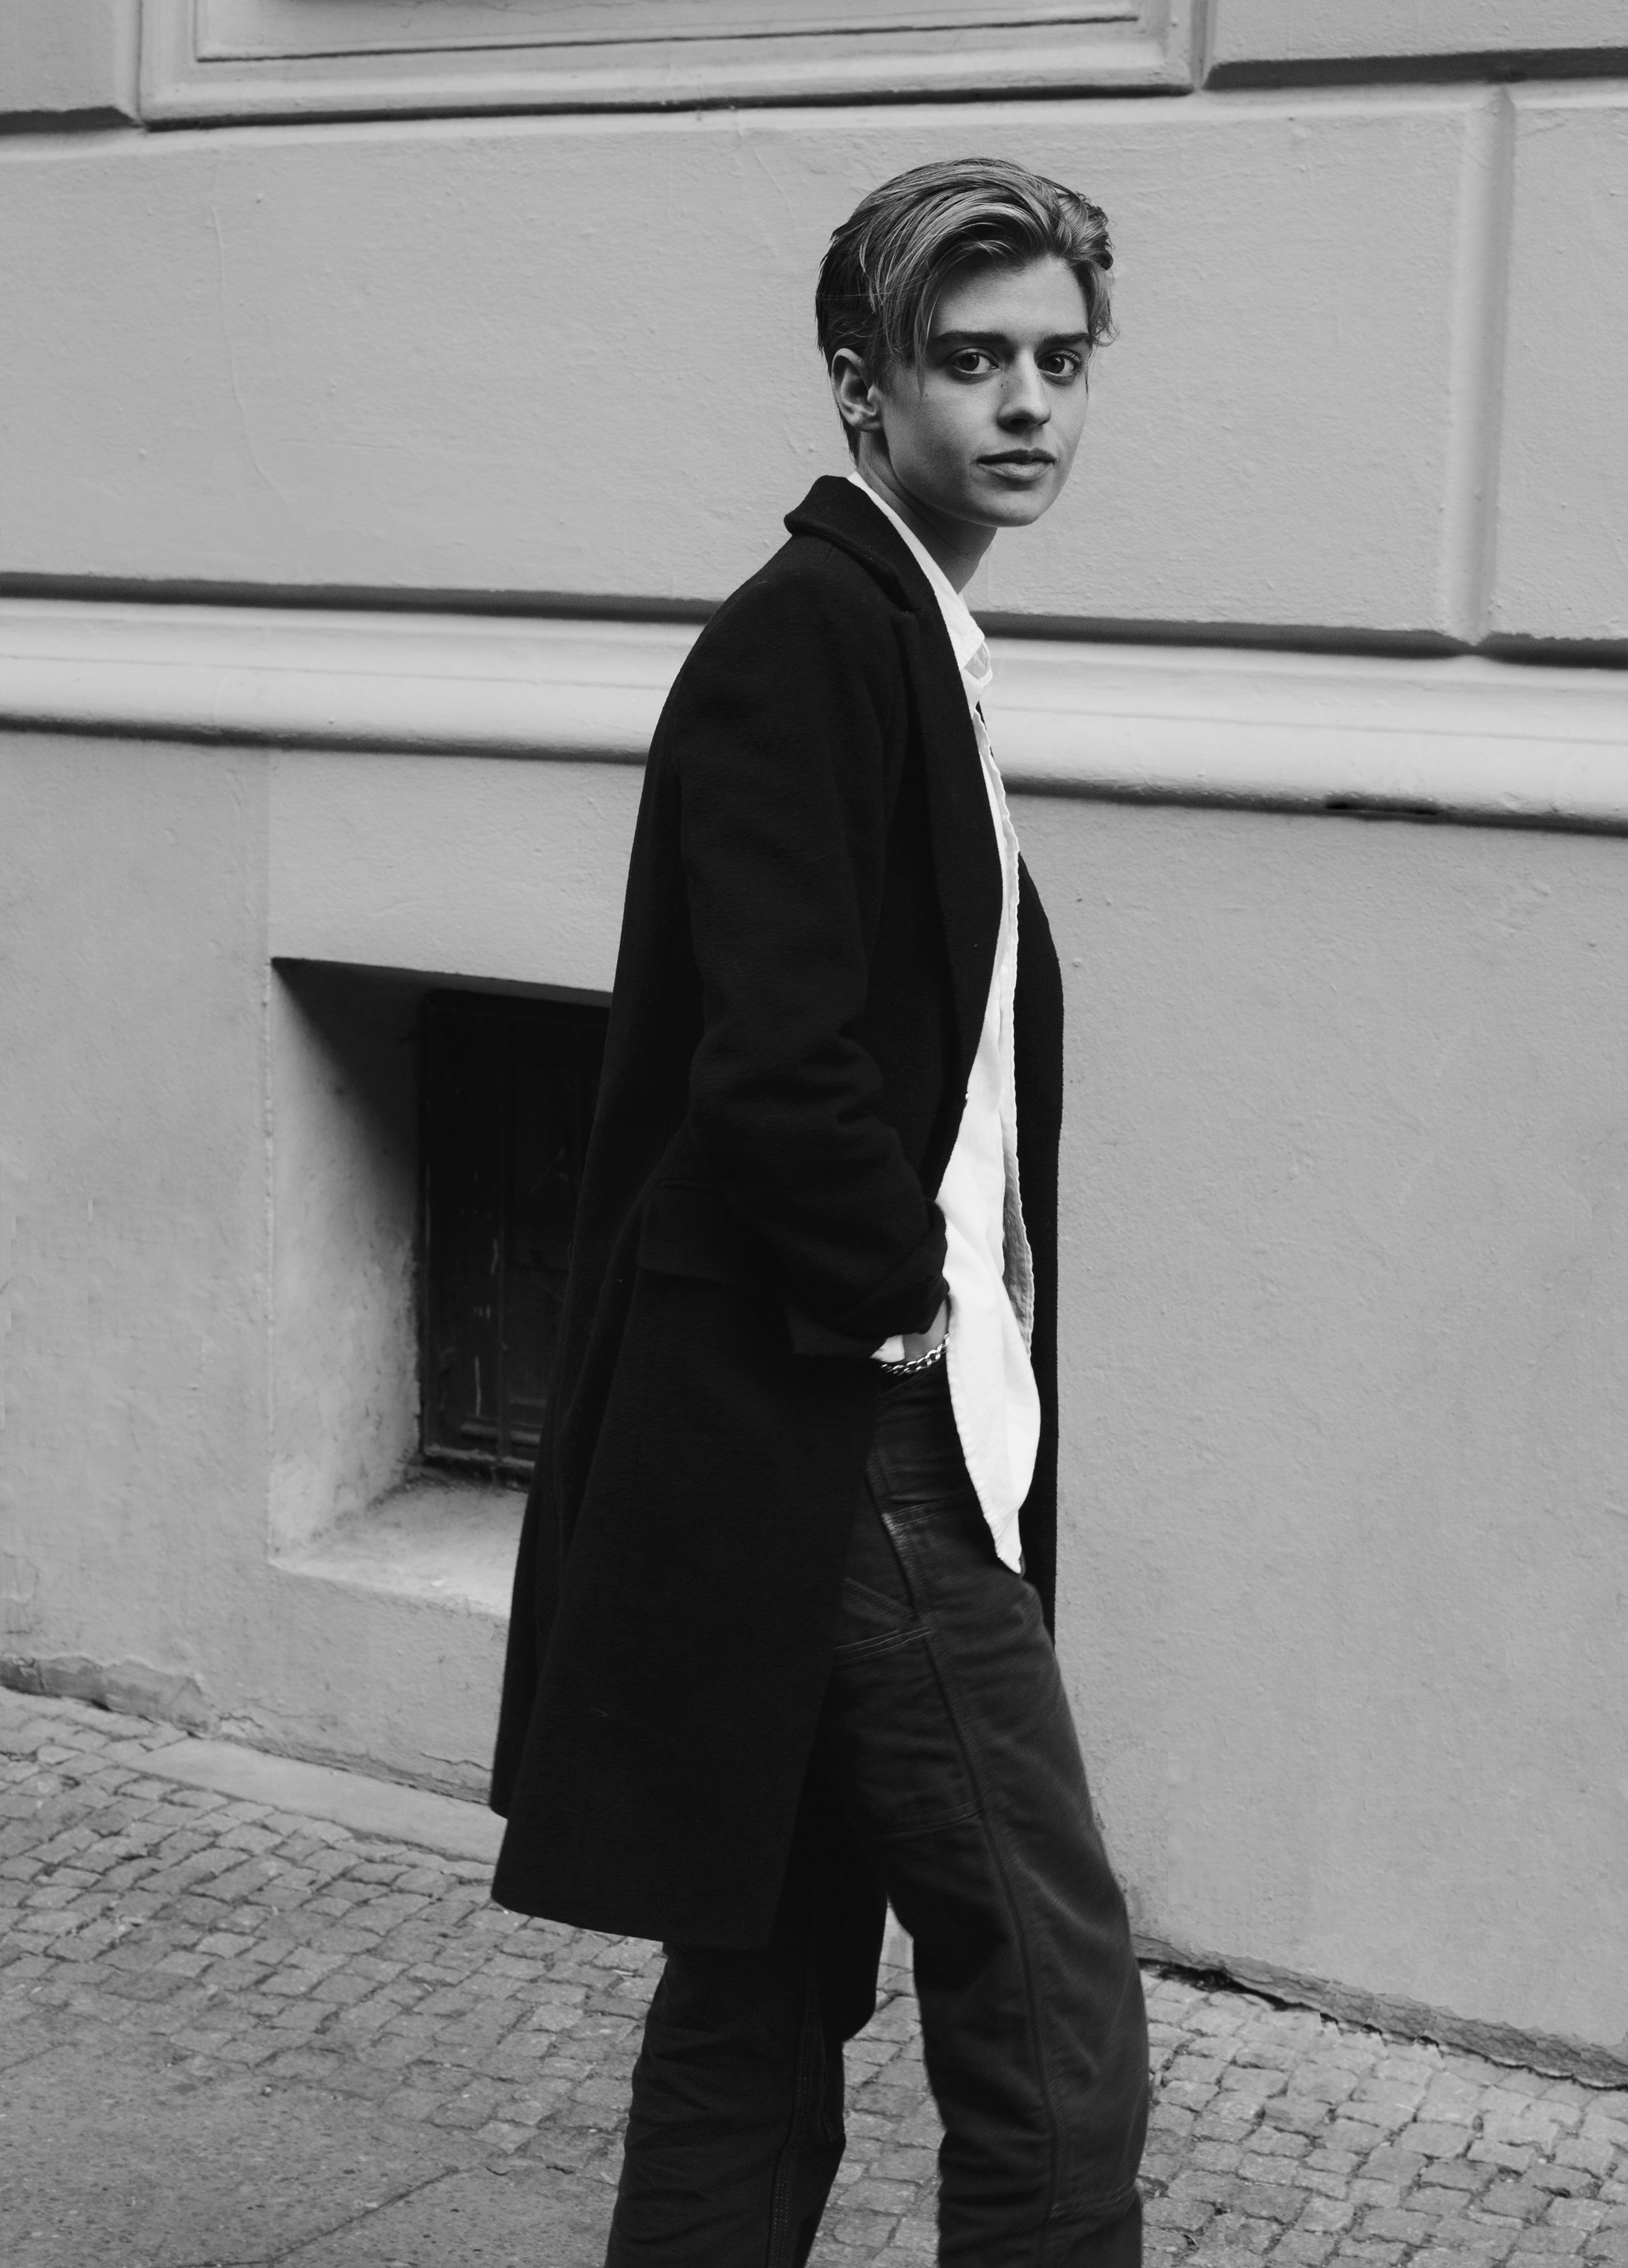 berlin androgynous female fashion model